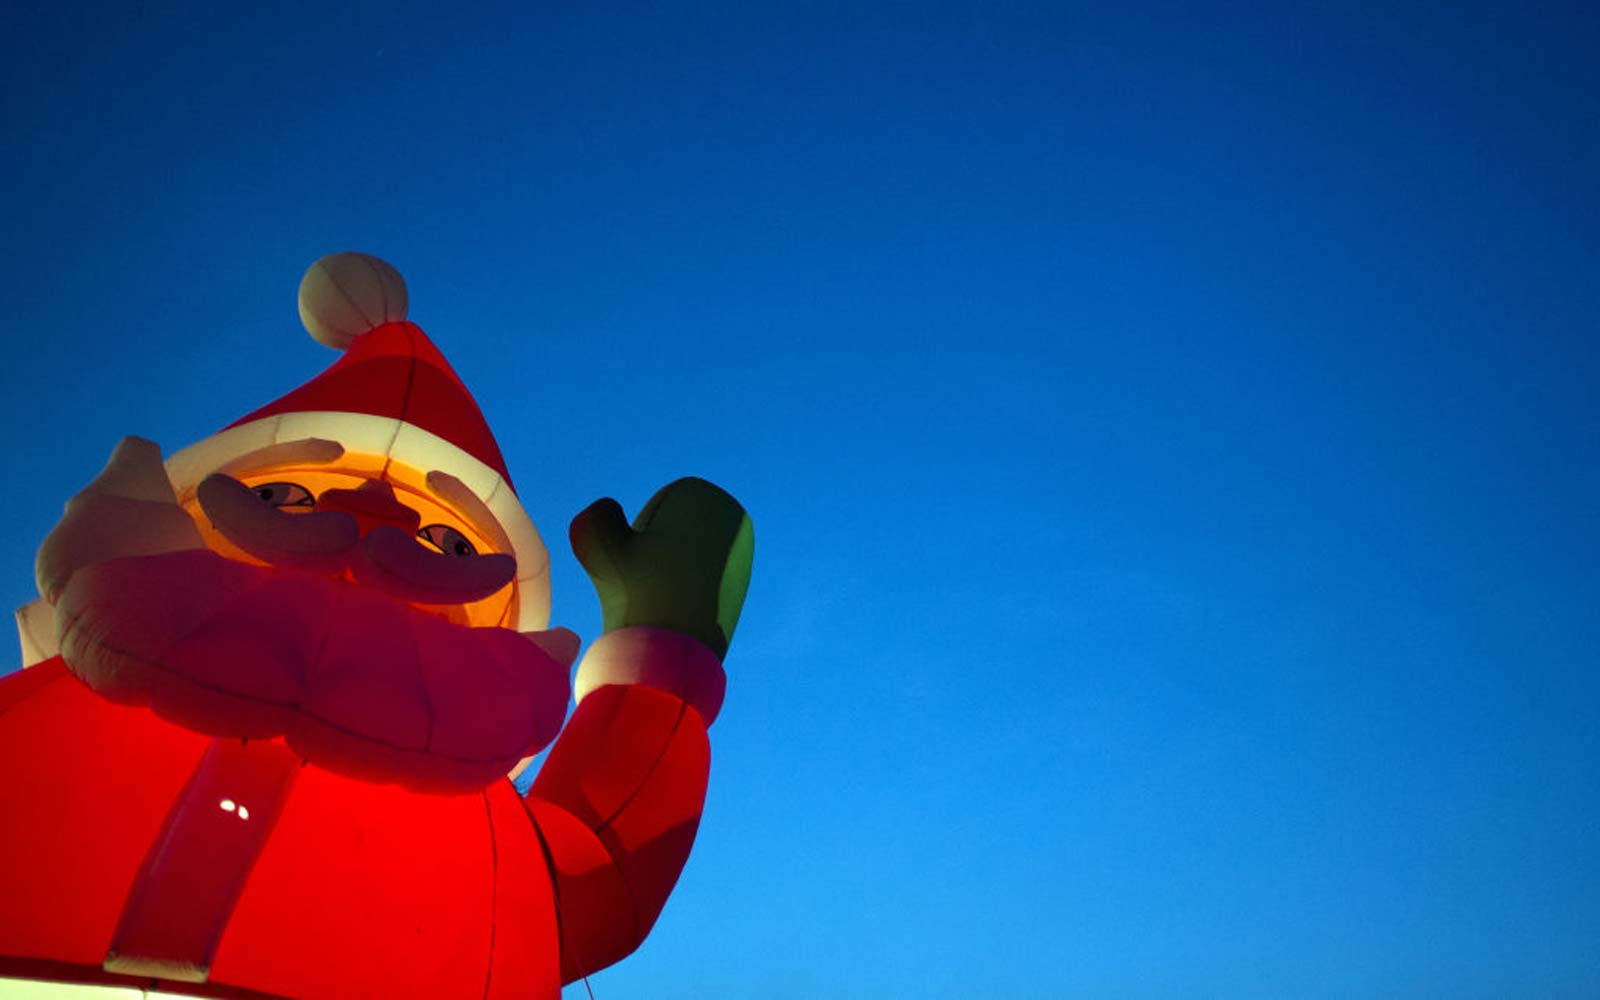 An Inflatable Santa Claus Got Loose in England and Caused the Jolliest Traffic Jam Ever